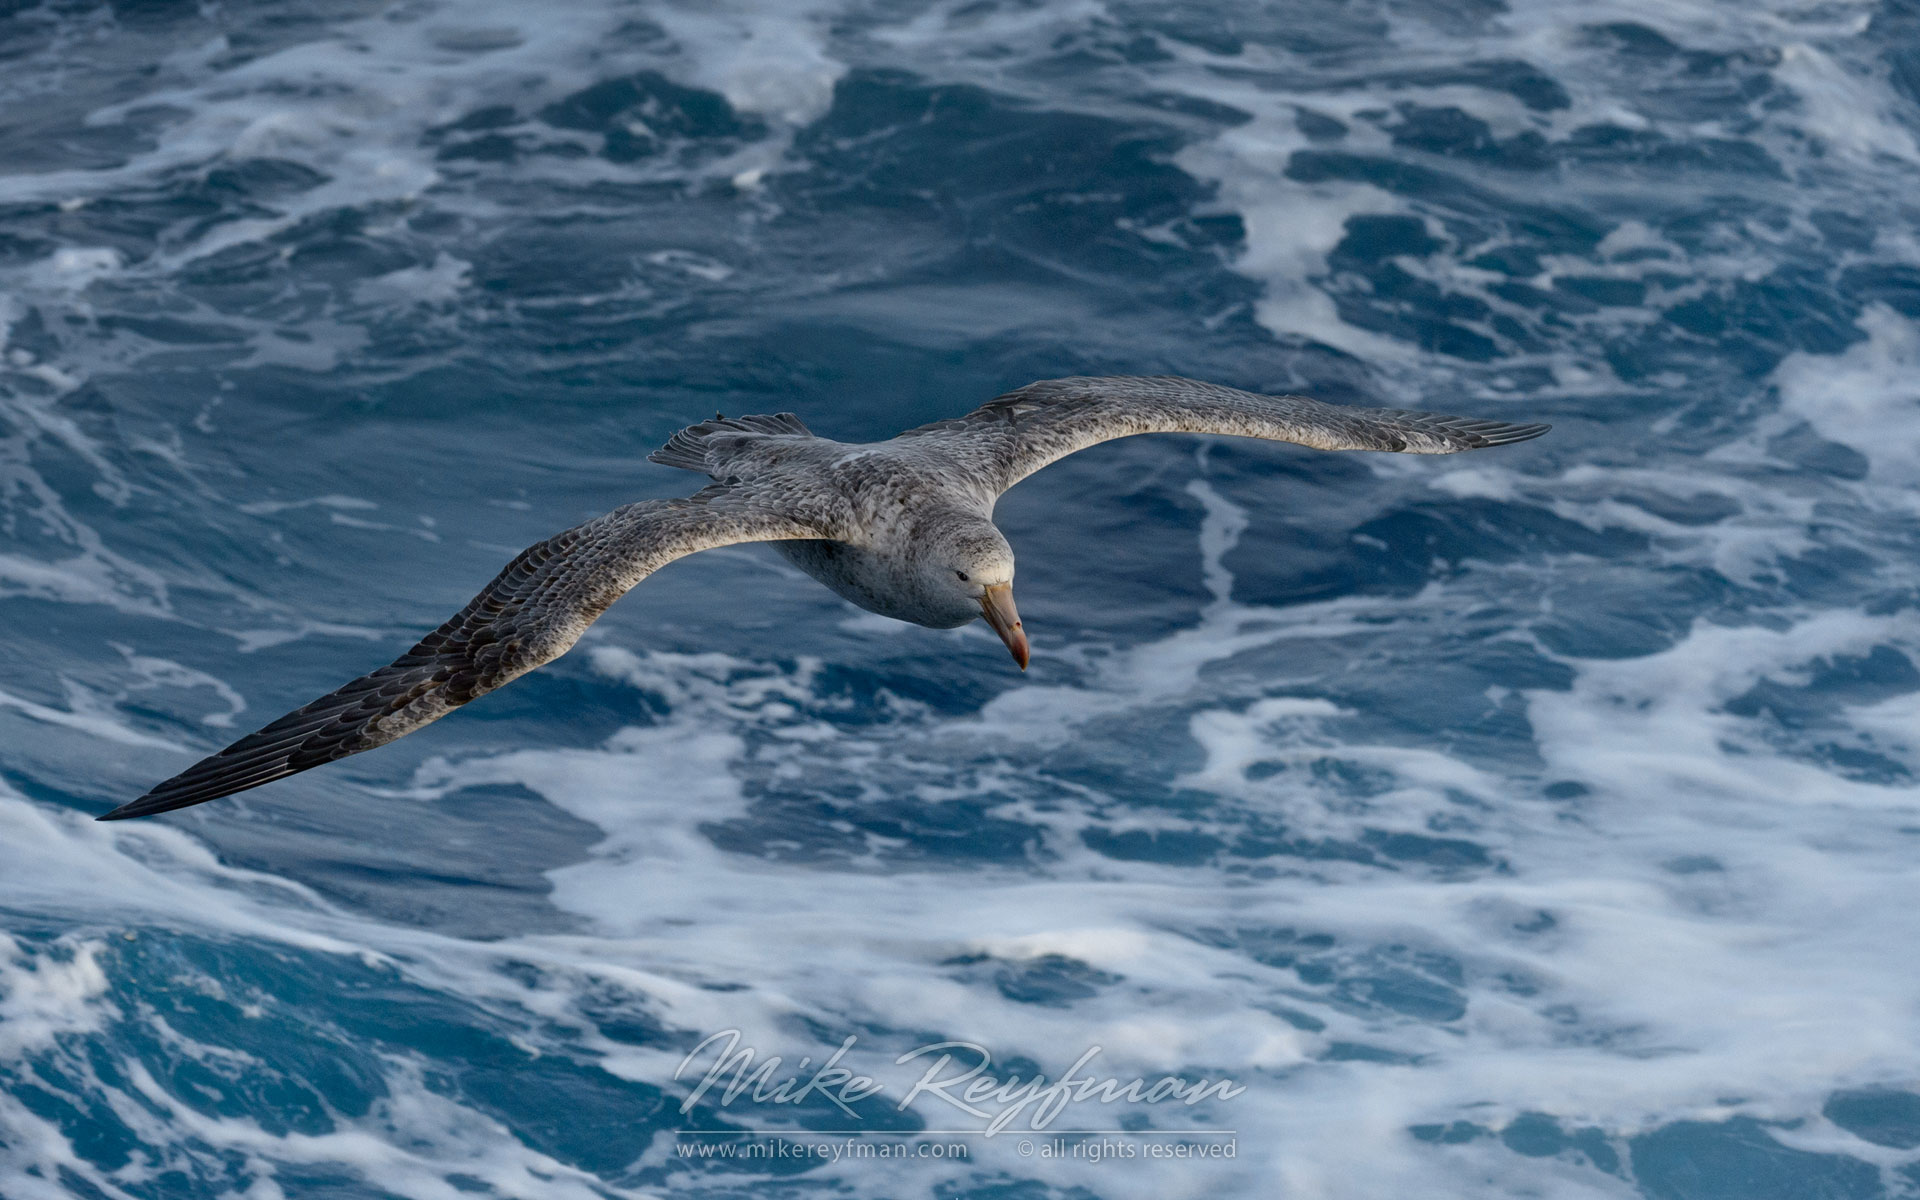 Antarctic Giant Petrel (Macronectes giganteus) in flight. - Albatrosses-Petrels-Landscapes-South-Georgia-Sub-Antarctic - Mike Reyfman Photography